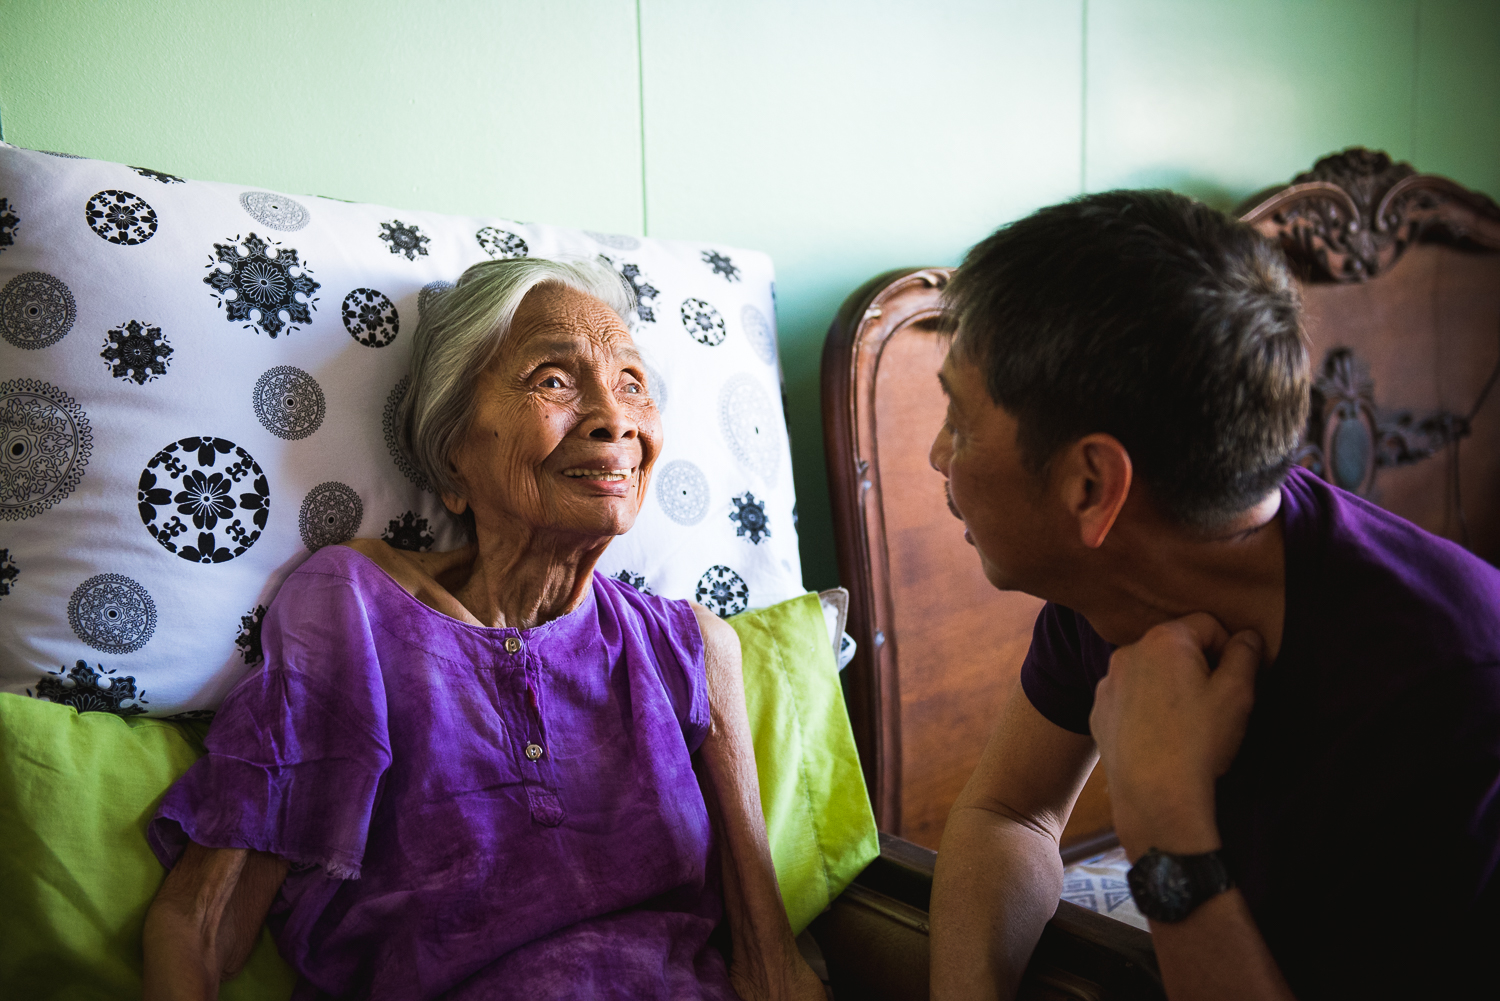 Staying close to the topic of my Lola, one of my favorite pictures from the trip was this moment between her and her son, my dad. This shot was taken during the brief visit we had when stopping by Guagua after the Tanjuakio family reunion at Subic Bay.